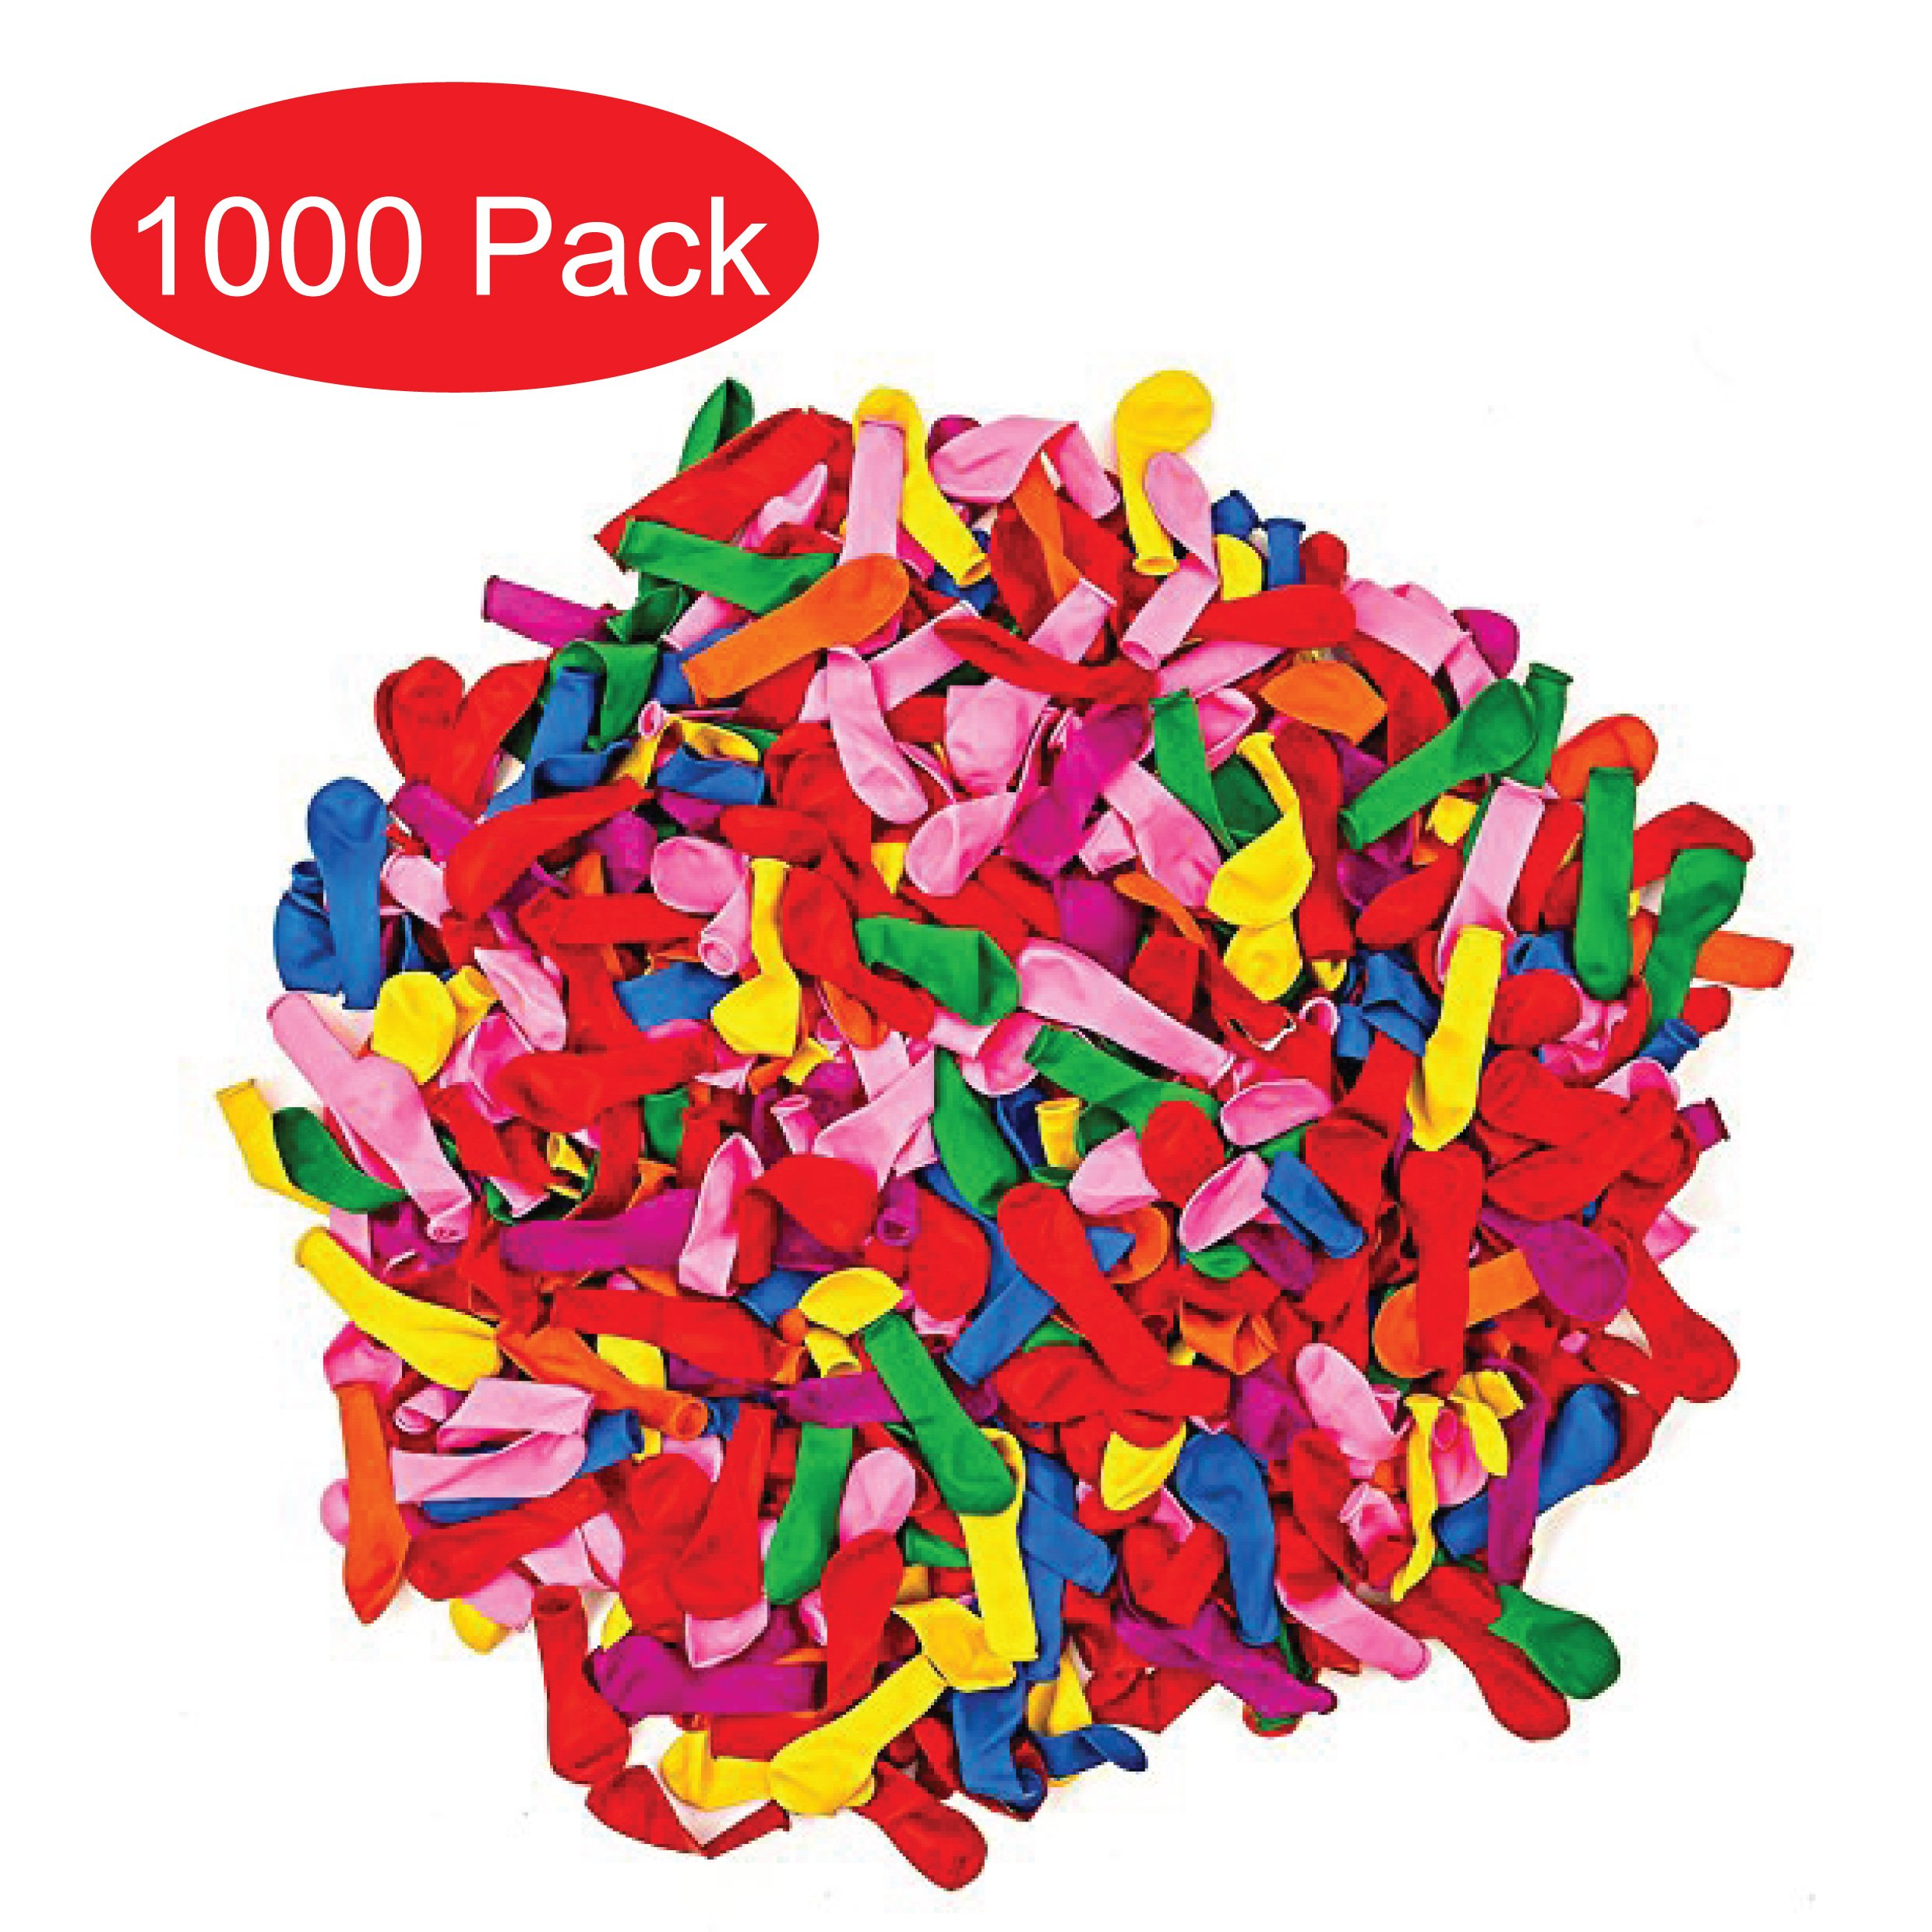 Water Balloons Refill Quick & Easy Kit - 1000 Balloons +1000 Rubber Bands + 5 Quick & Easy Refill Tools Diy Toys -Save Money,Summer Splash Fun for Kids & Adults